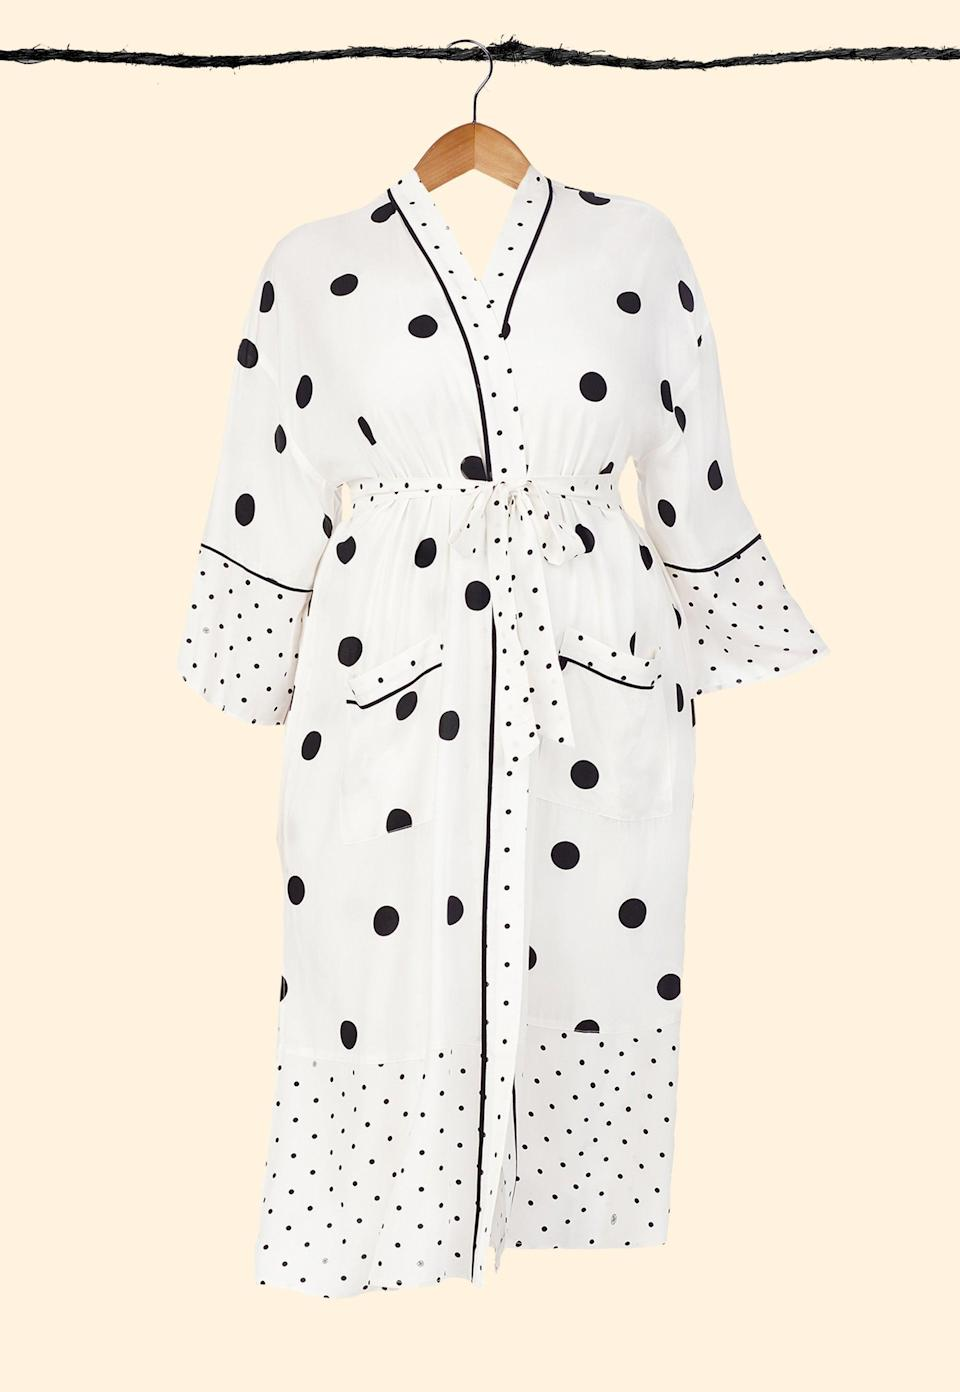 "<h3>Refinery29 Connie Print Woven Robe</h3> <br>For many a first-time mom, #robelife is going to be a permanent state of being on the weekends. Might as well invest in a cute one, right?<br><br><strong>Refinery29</strong> Connie Eco-Vero Maxi Robe, $, available at <a href=""https://go.skimresources.com/?id=30283X879131&url=https%3A%2F%2Fshop.nordstrom.com%2Fs%2Frefinery29-print-woven-robe-regular-plus-size%2F5571010%2Ffull"" rel=""nofollow noopener"" target=""_blank"" data-ylk=""slk:Nordstrom"" class=""link rapid-noclick-resp"">Nordstrom</a><br>"